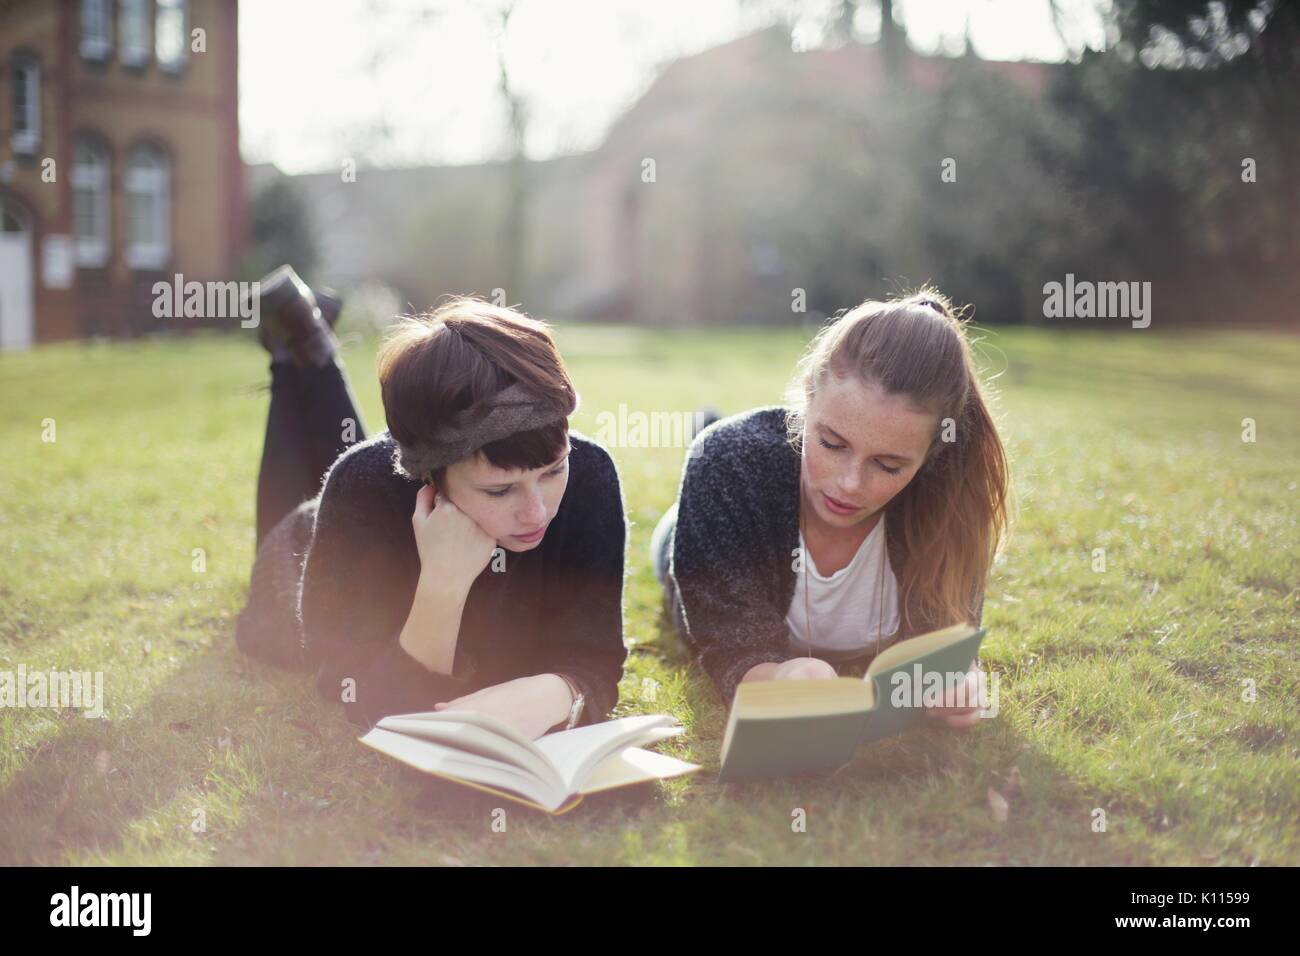 Two young women reading in a park - Stock Image